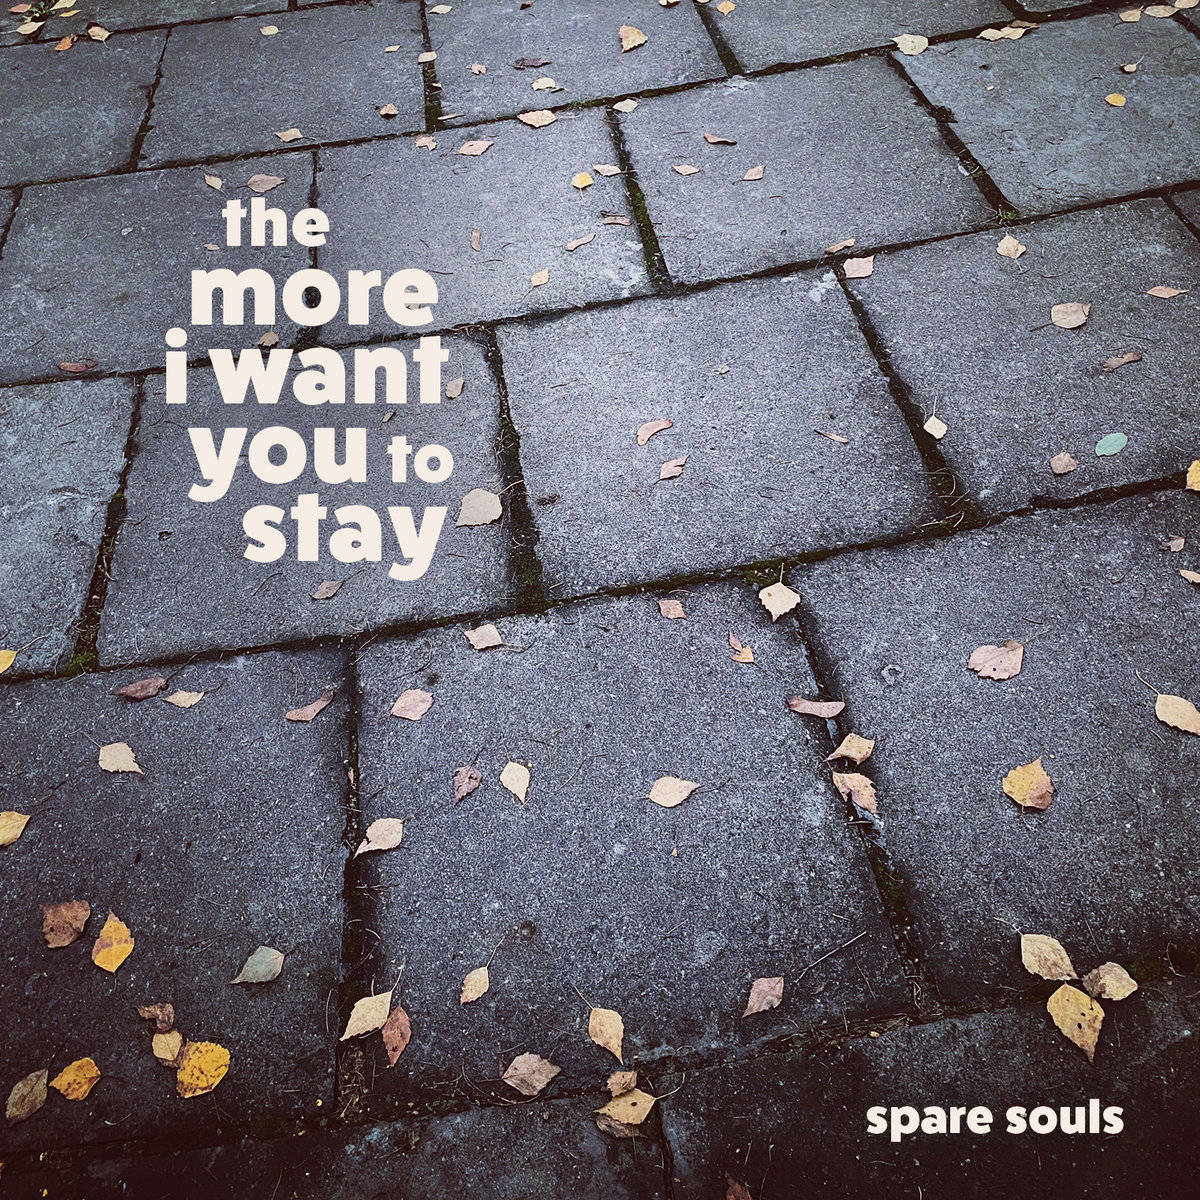 The More I Want You to Stay by Spare Souls